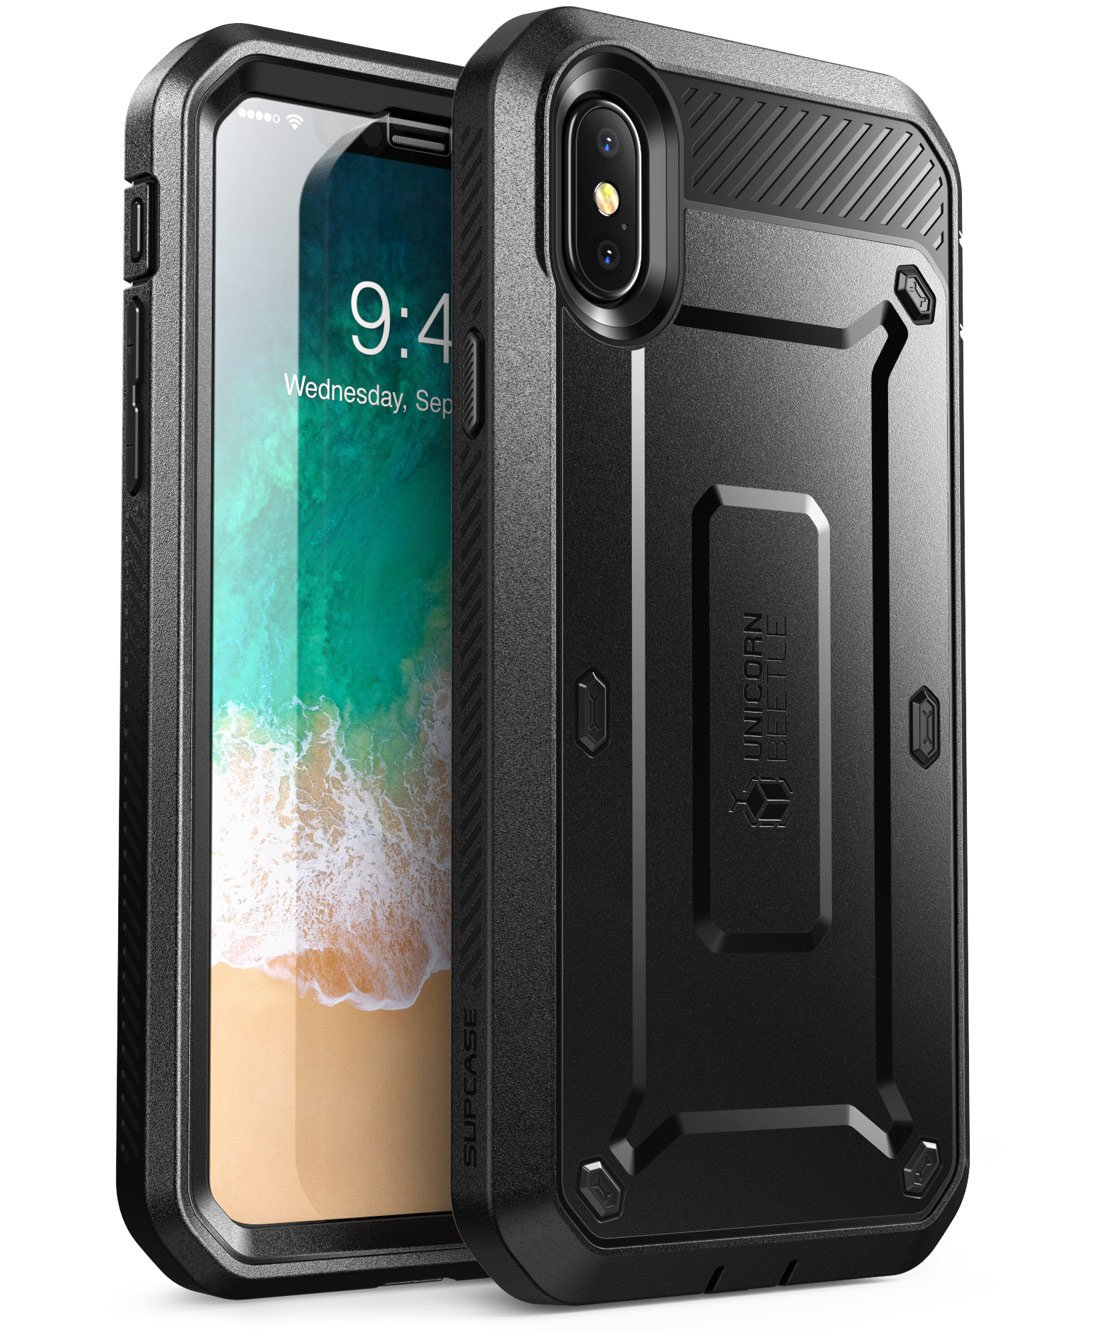 Supcase Iphone X Xs Case Full Body Rugged Plus Spigen Anti Shock With Stand Tough Armor Casing Black Holster Built In Screen Protector For Apple 2017 2018 Unicorn